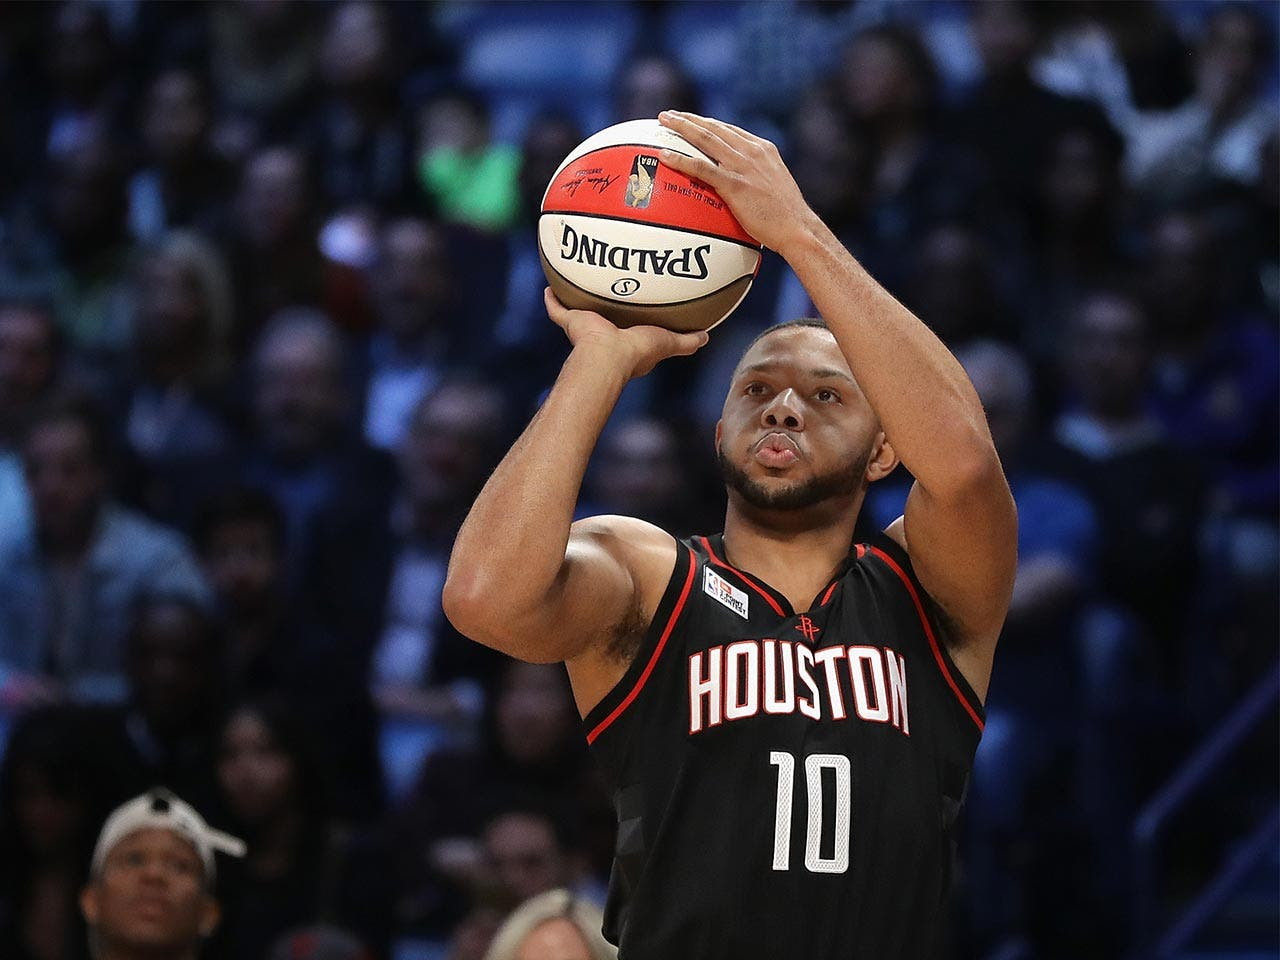 Houston Rockets | Ronald Martinez/Getty Images